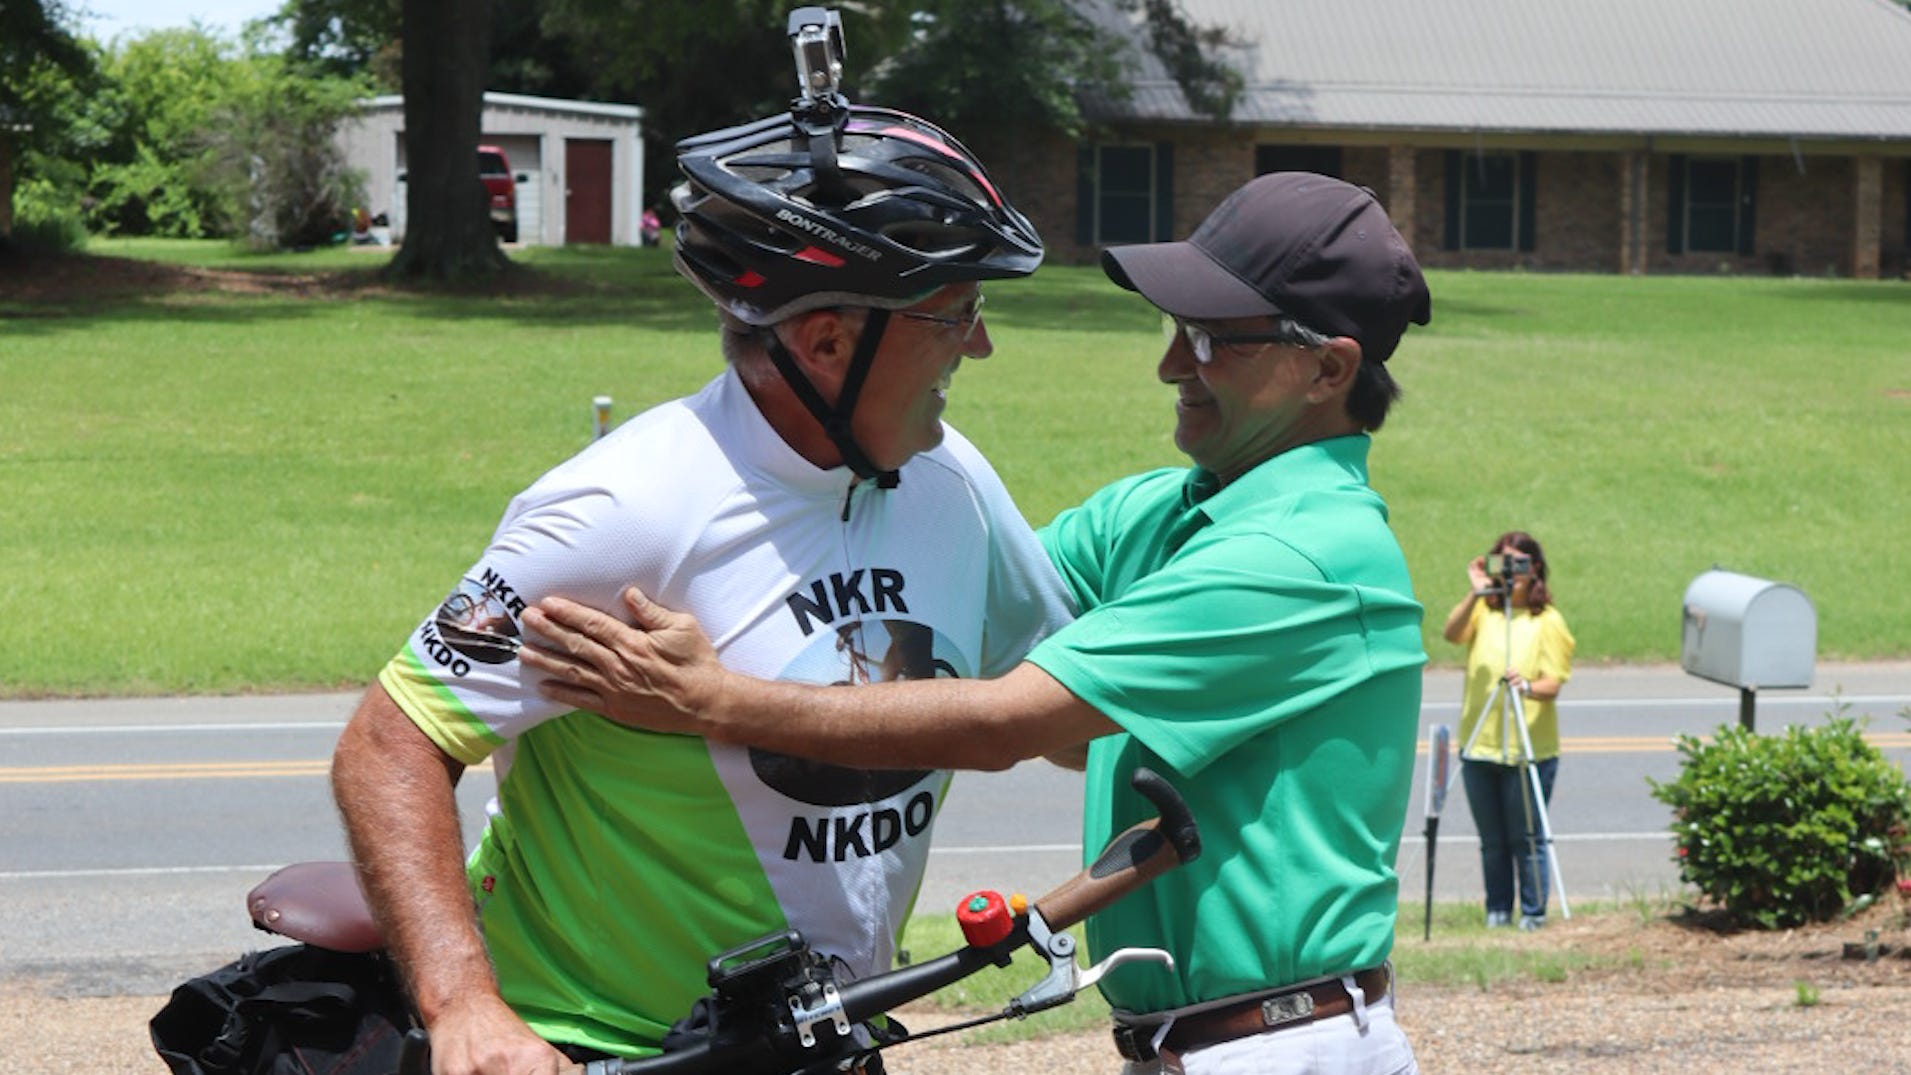 Cyclist donates kidney to complete stranger